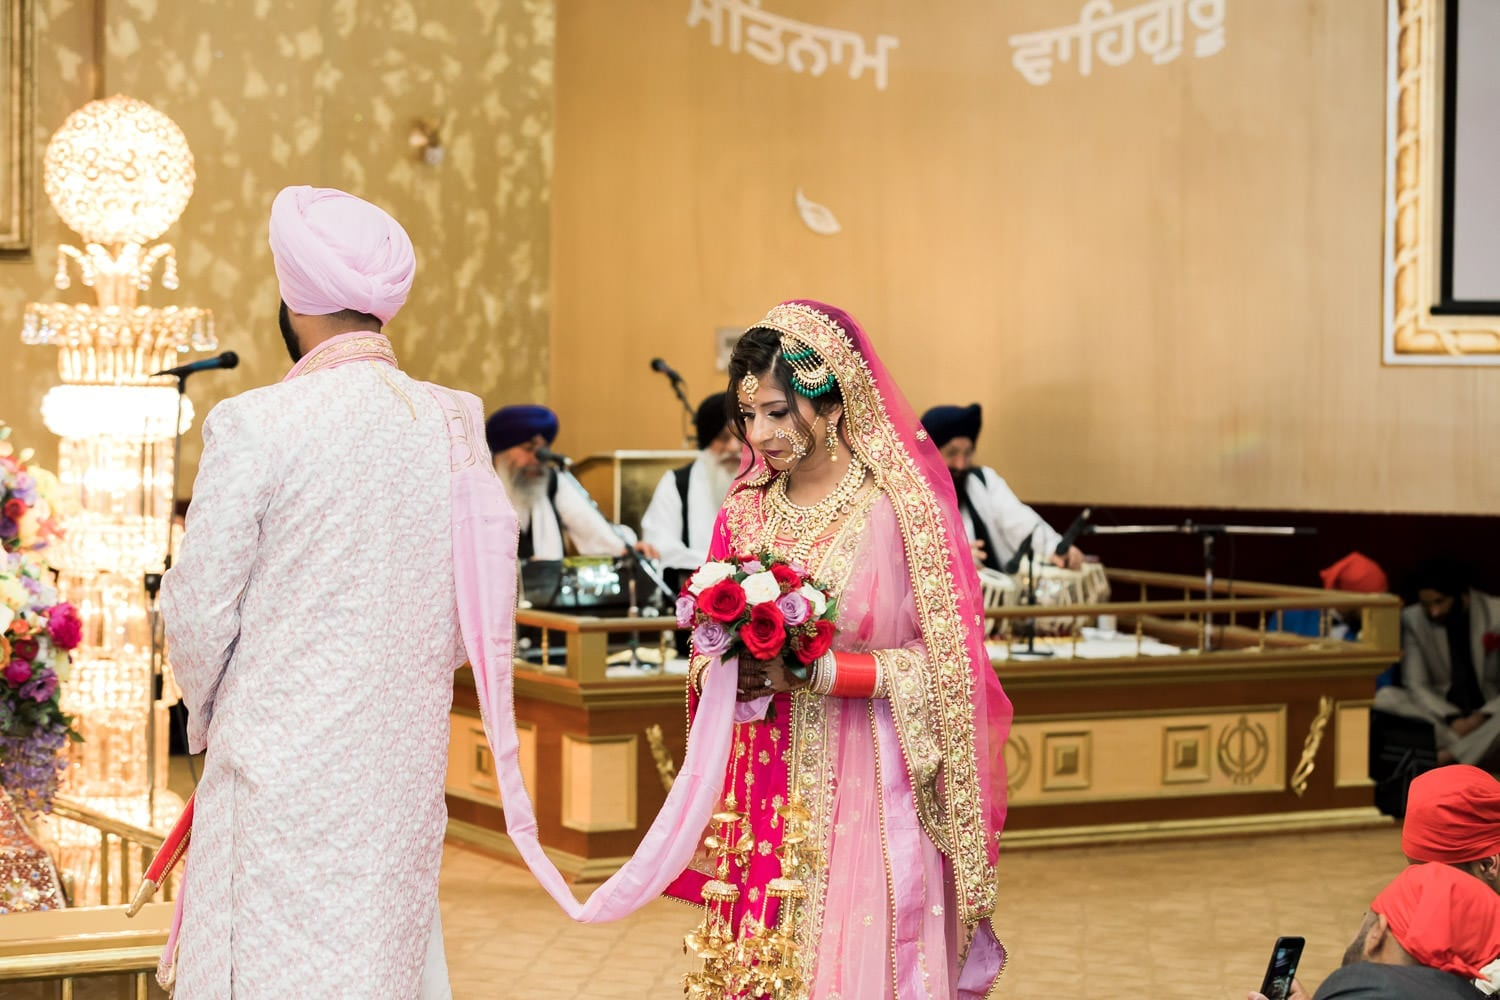 Indian wedding at the temple | Indian wedding photography Vancouver